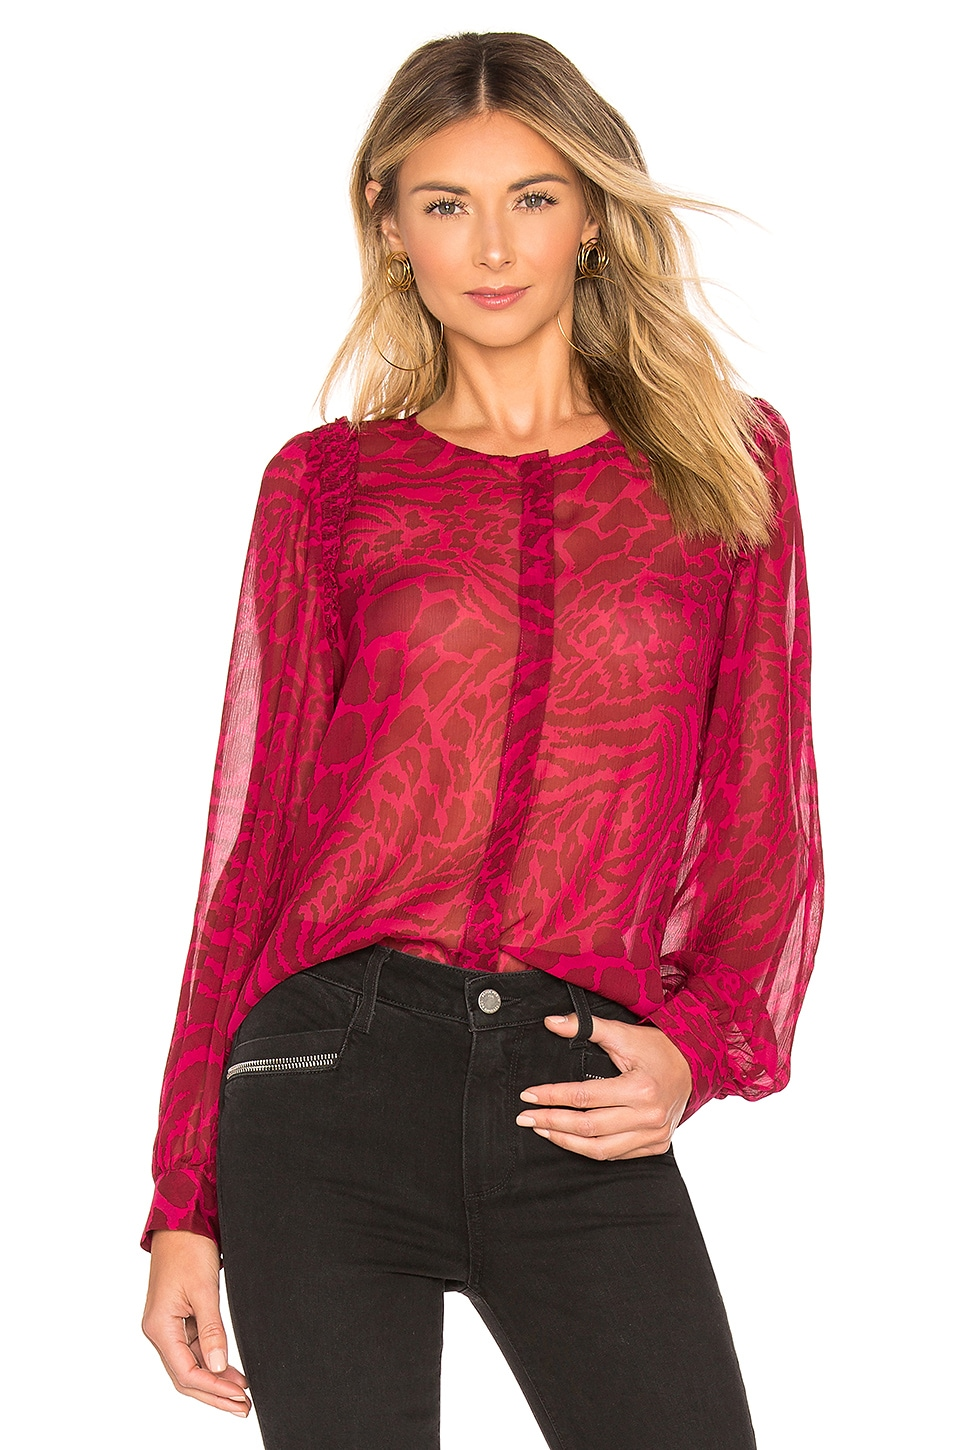 PAIGE Ambrosine Top in Rumba Red